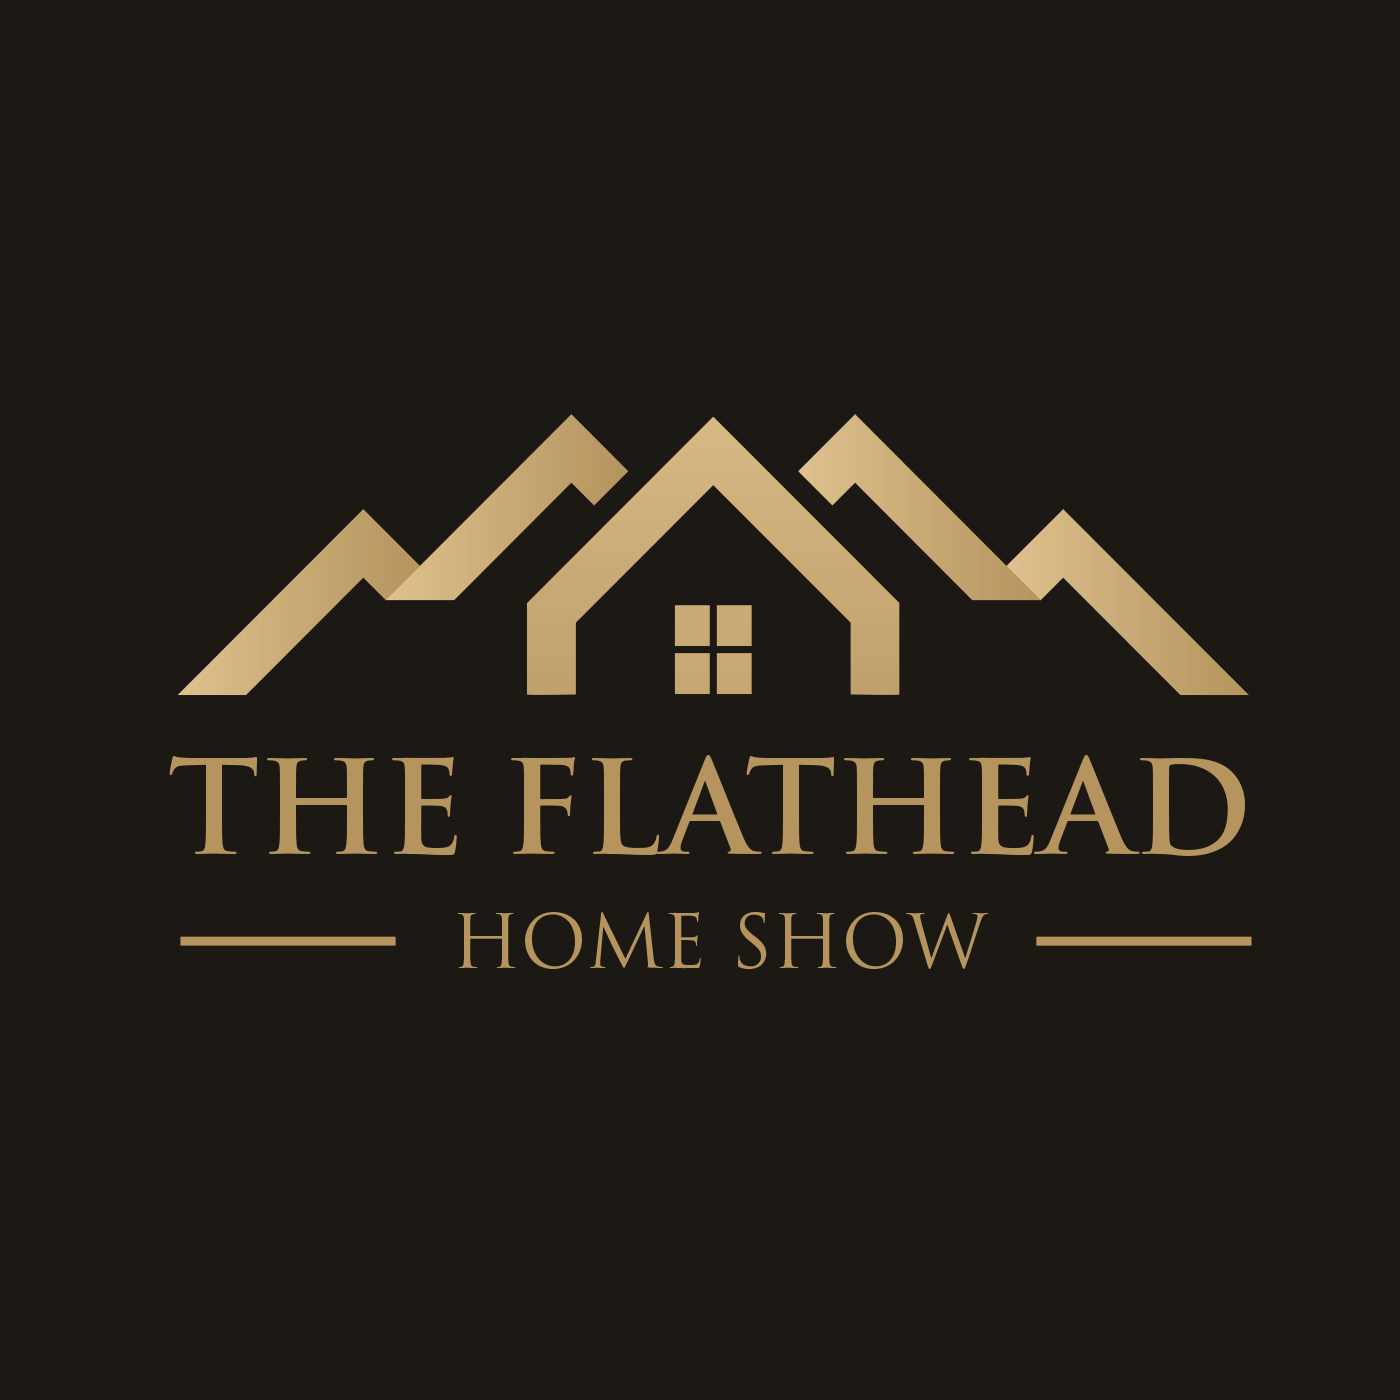 The Flathead Home Show